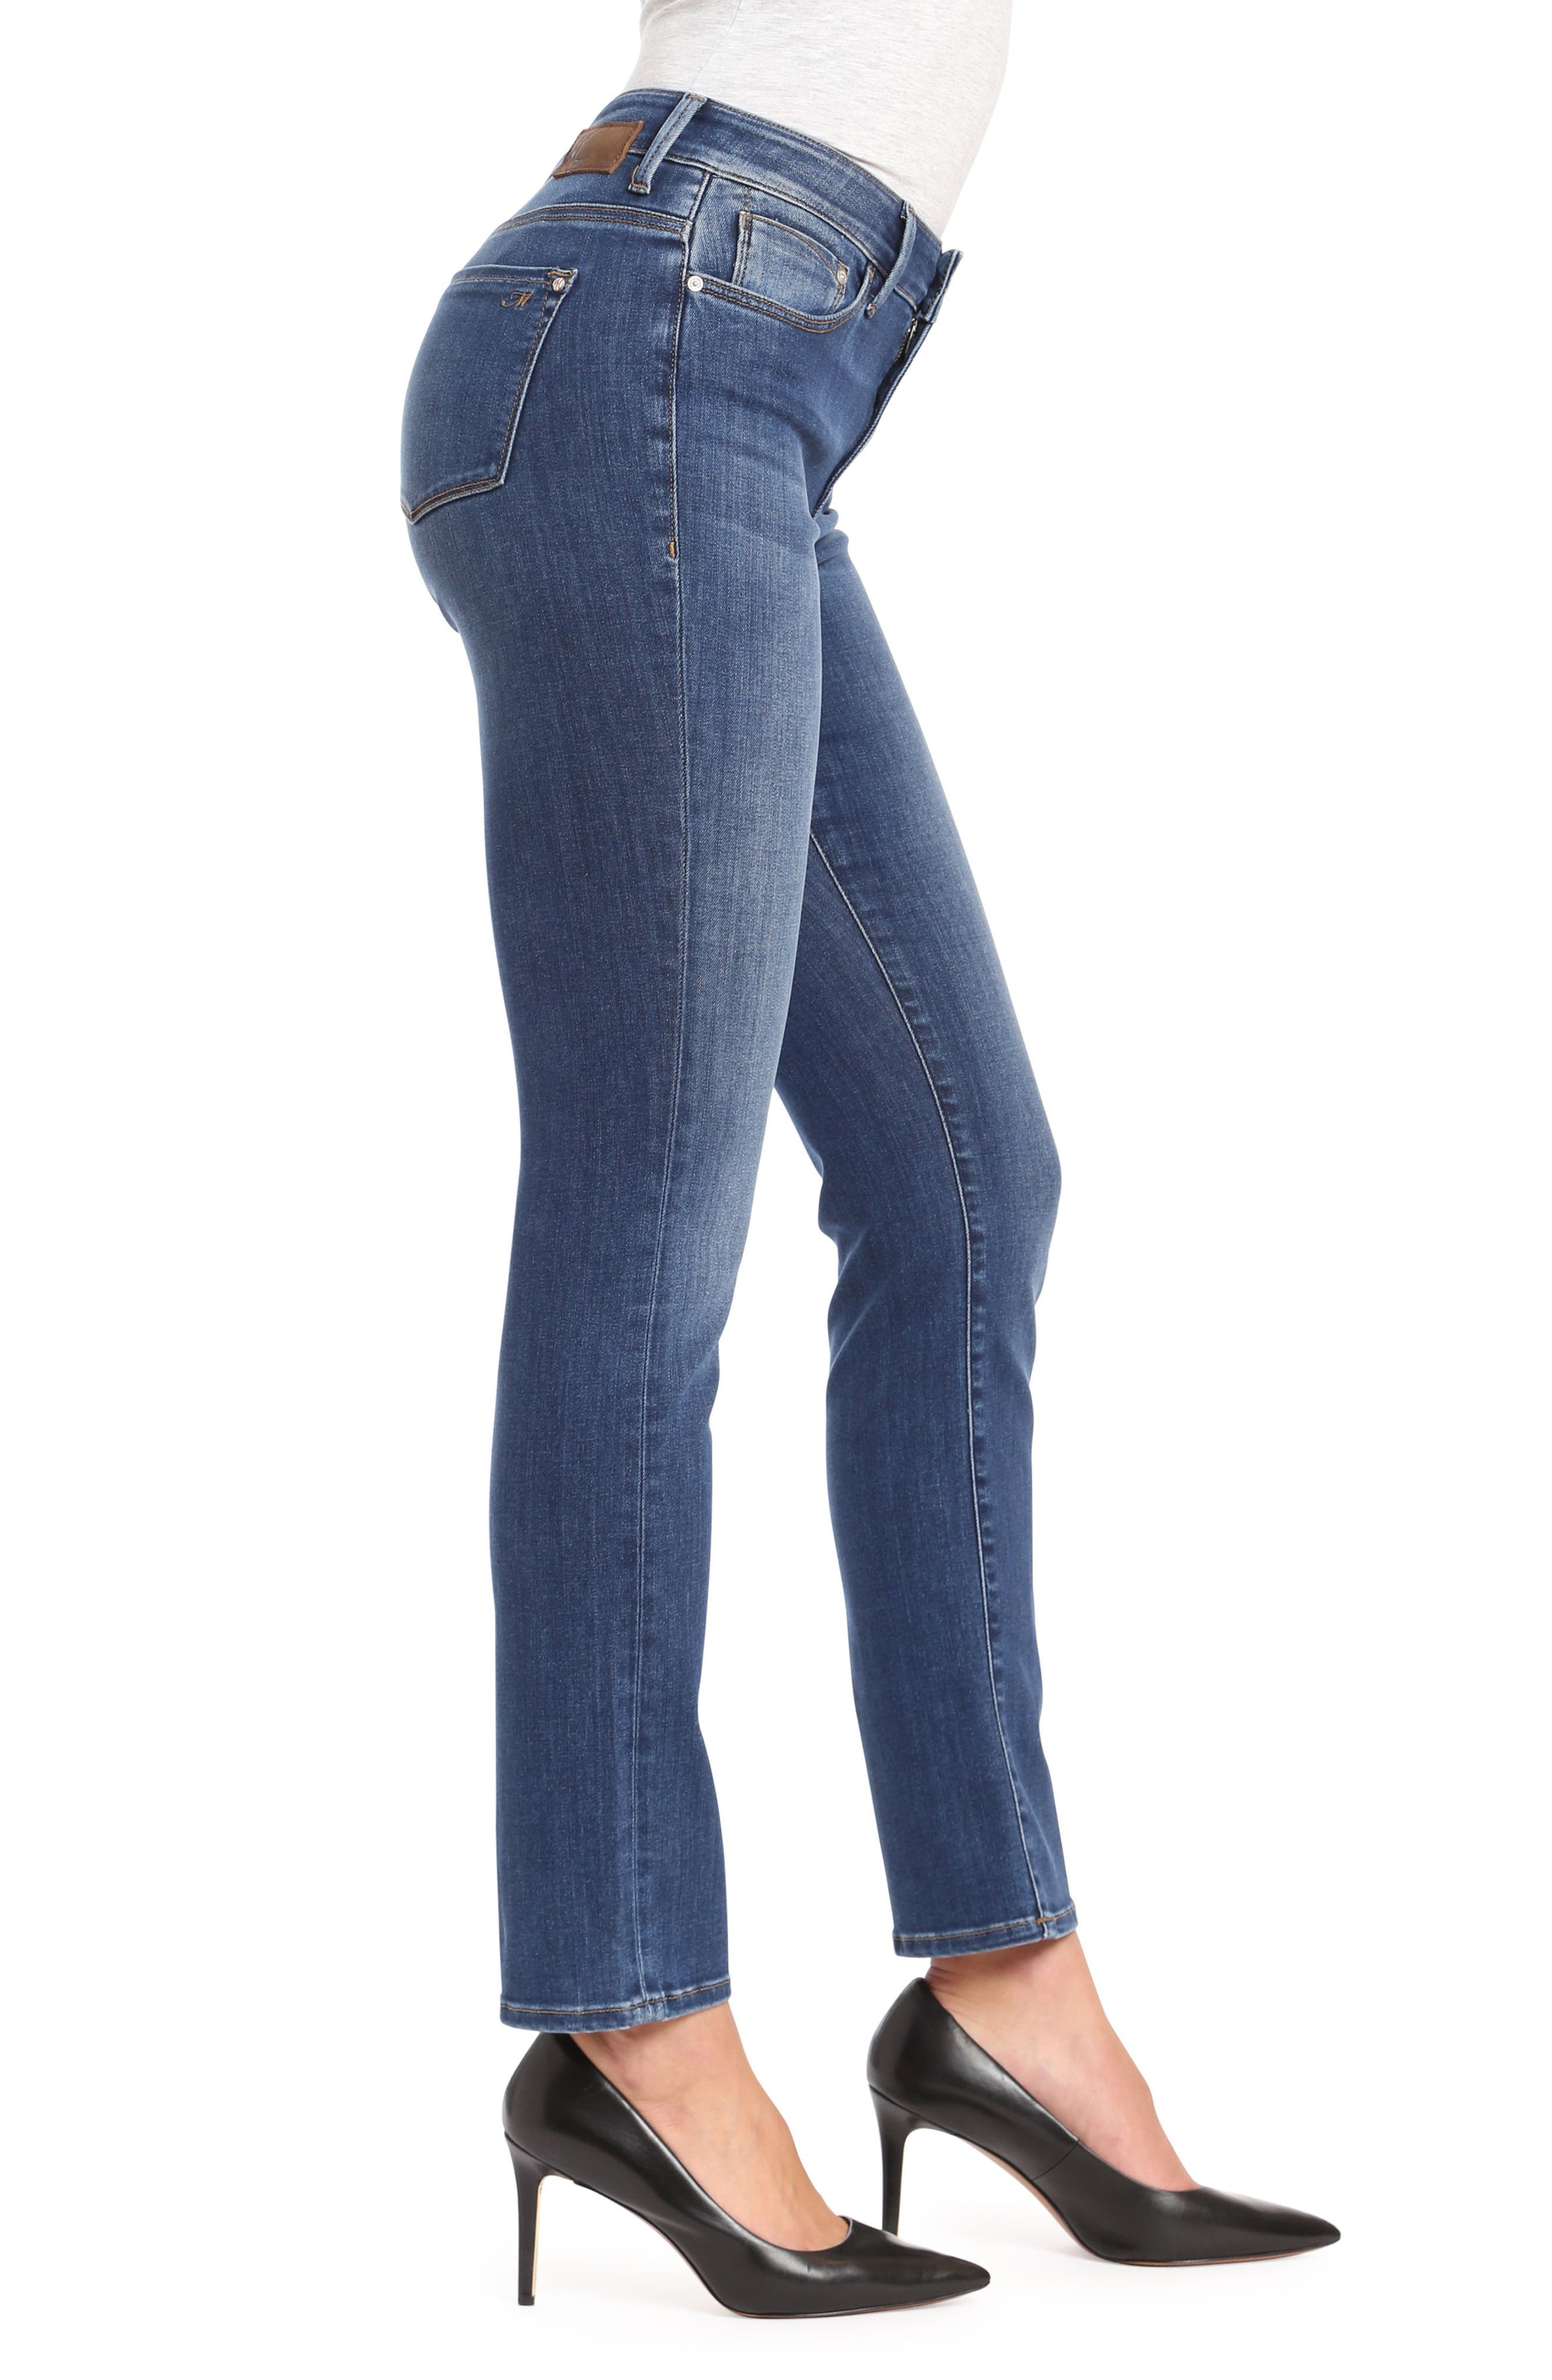 Kendra Straight Leg Jeans,                             Alternate thumbnail 3, color,                             INDIGO SUPER SOFT